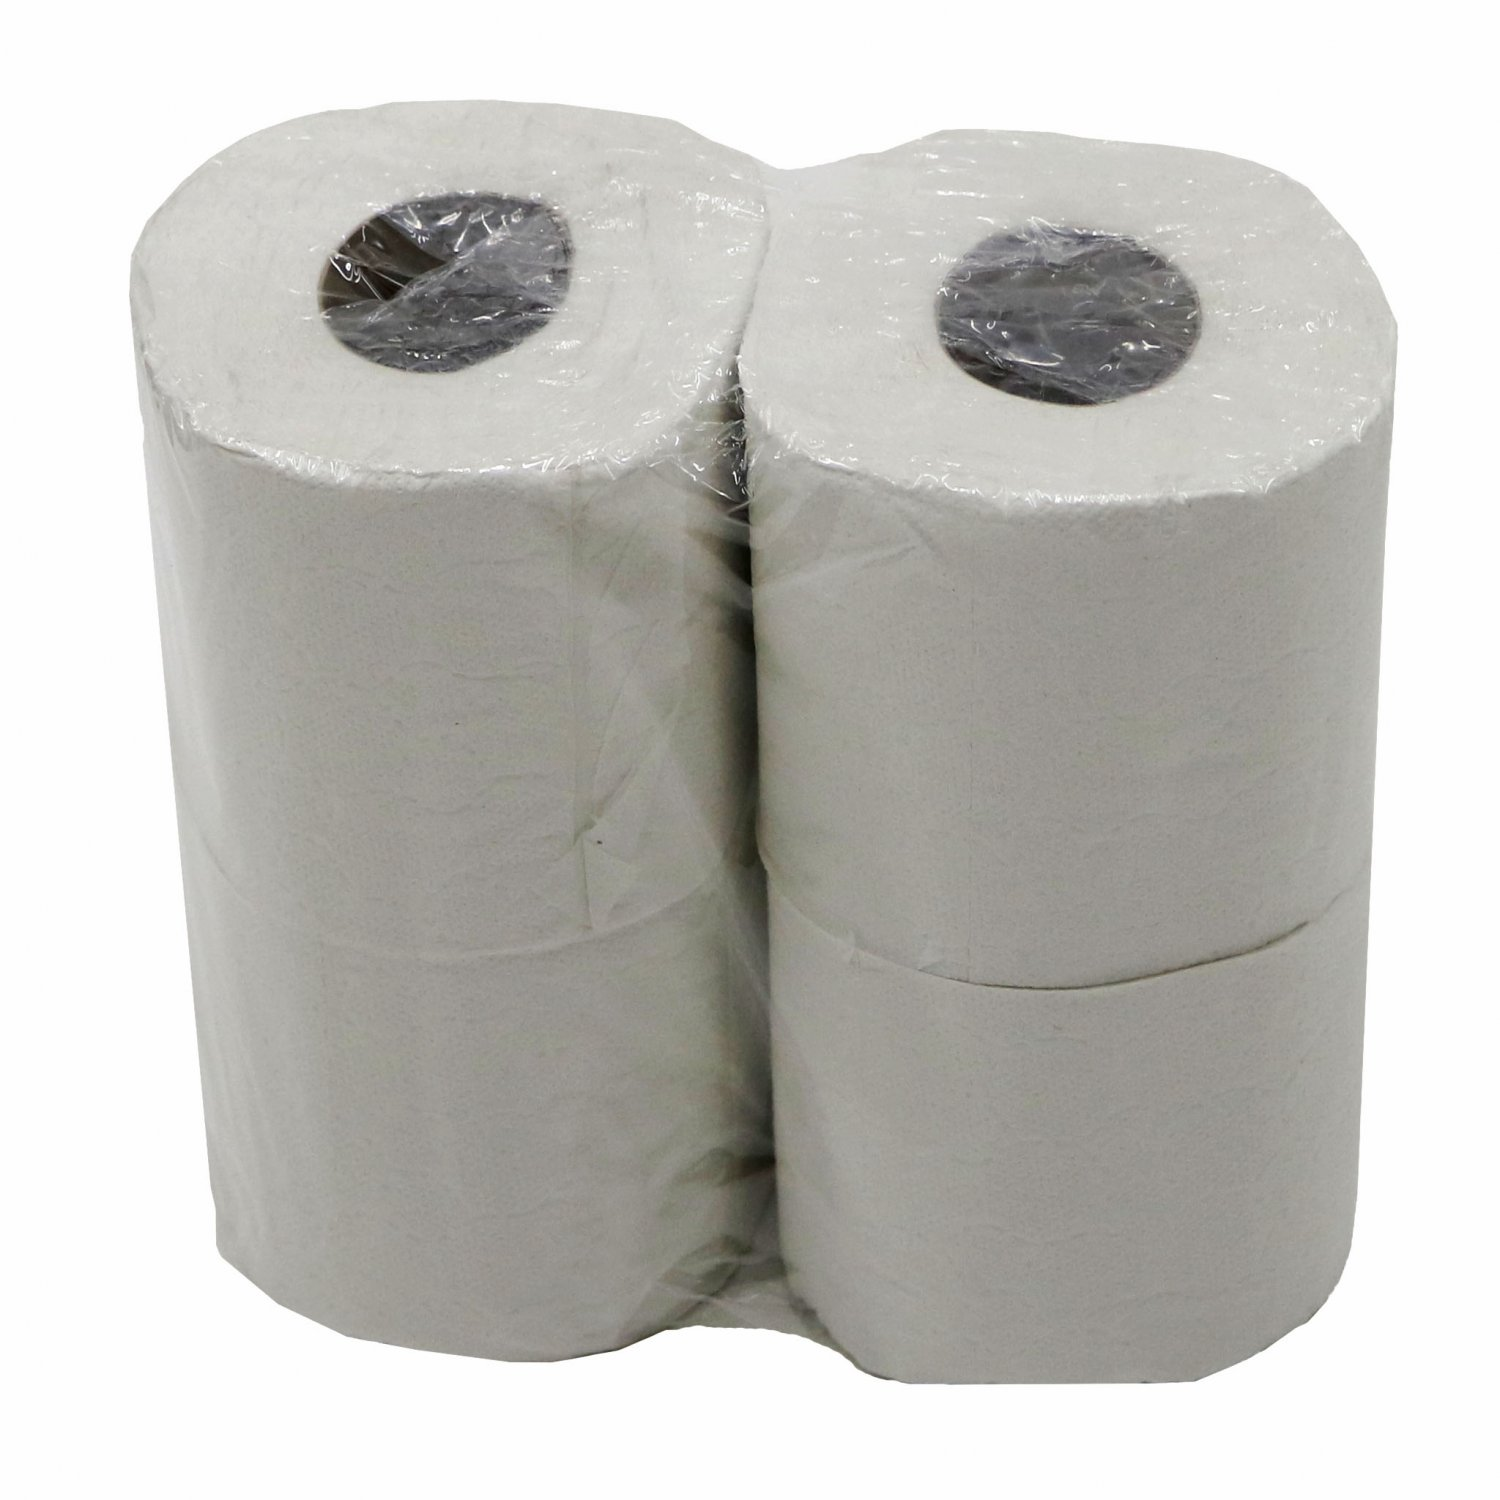 36x Rolls 2 Ply 320 Sheet Toilet Roll Tissue Bathroom